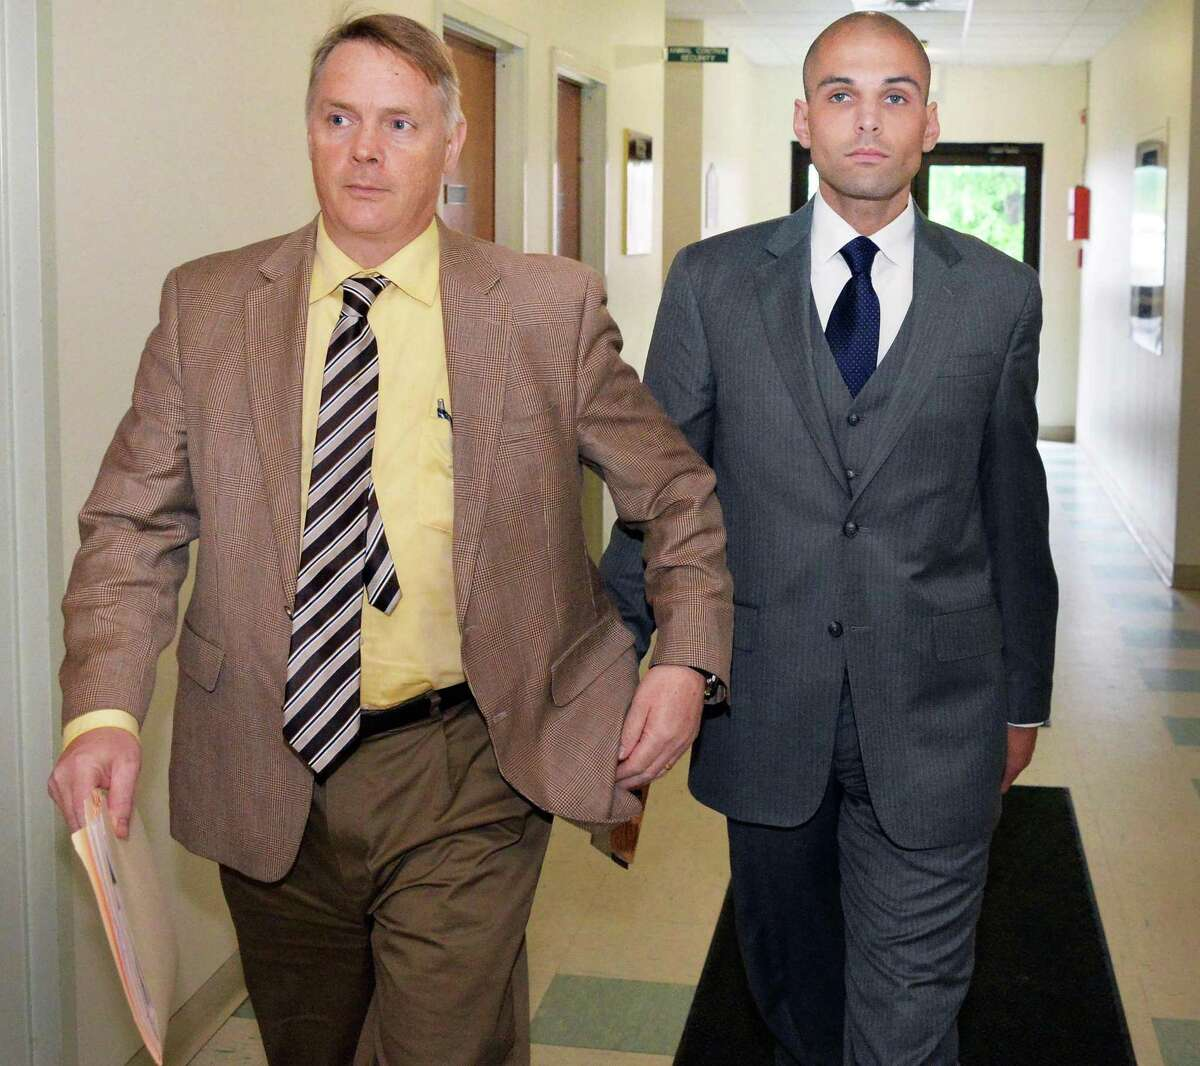 The Rev. James Michael Taylor, right, an associate pastor at St. Kateri Tekakwitha Parish in Niskayuna, arrives at Clifton Park Town Court Wednesday afternoon, June 11, 2014, in Clifton Park, N.Y. Taylor is accused of engaging in physical contact and sharing phone calls, text messages and pictures with a 15-year-old girl he met while serving as a deacon and youth minister at Corpus Christi Church in Clifton Park. (John Carl D'Annibale / Times Union)